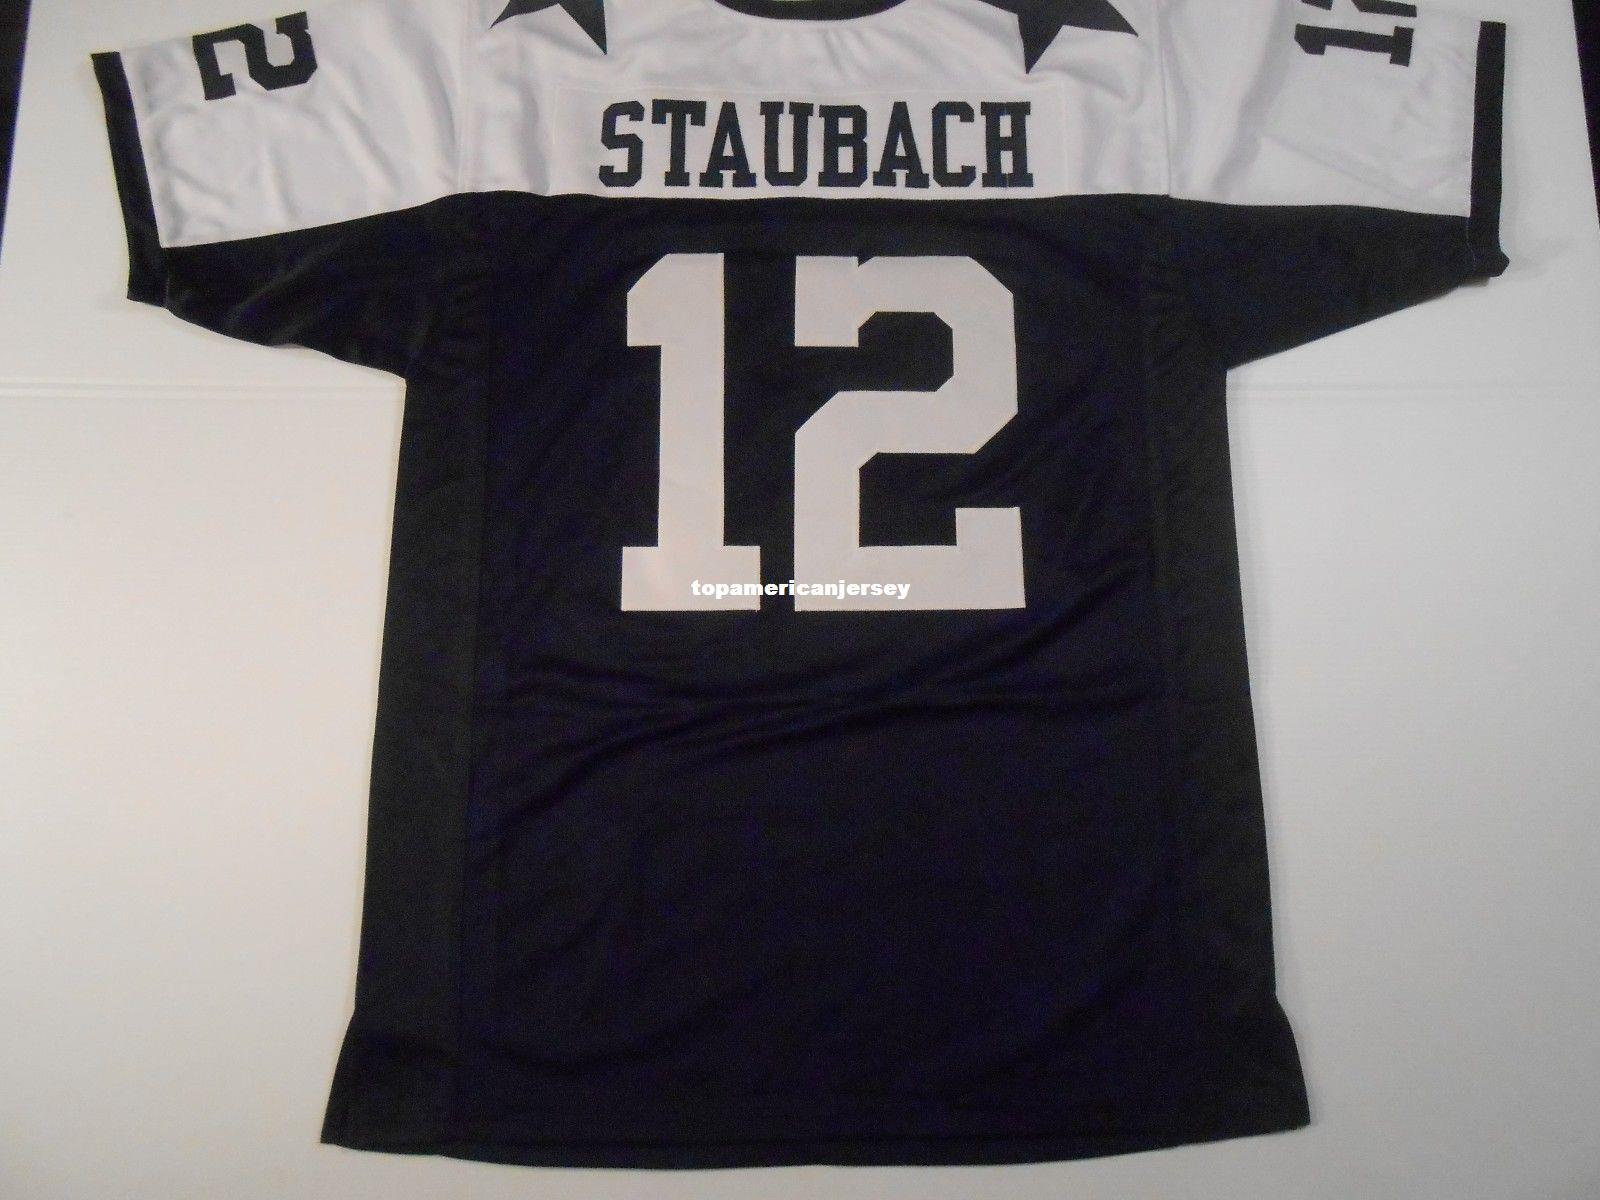 buy popular 65fbc 552af Cheap Retro custom Sewn Stitched #12 Roger Staubach MITCHELL & NESS Jersey  Top S-5XL,6XL Men's Football Jerseys Rugby